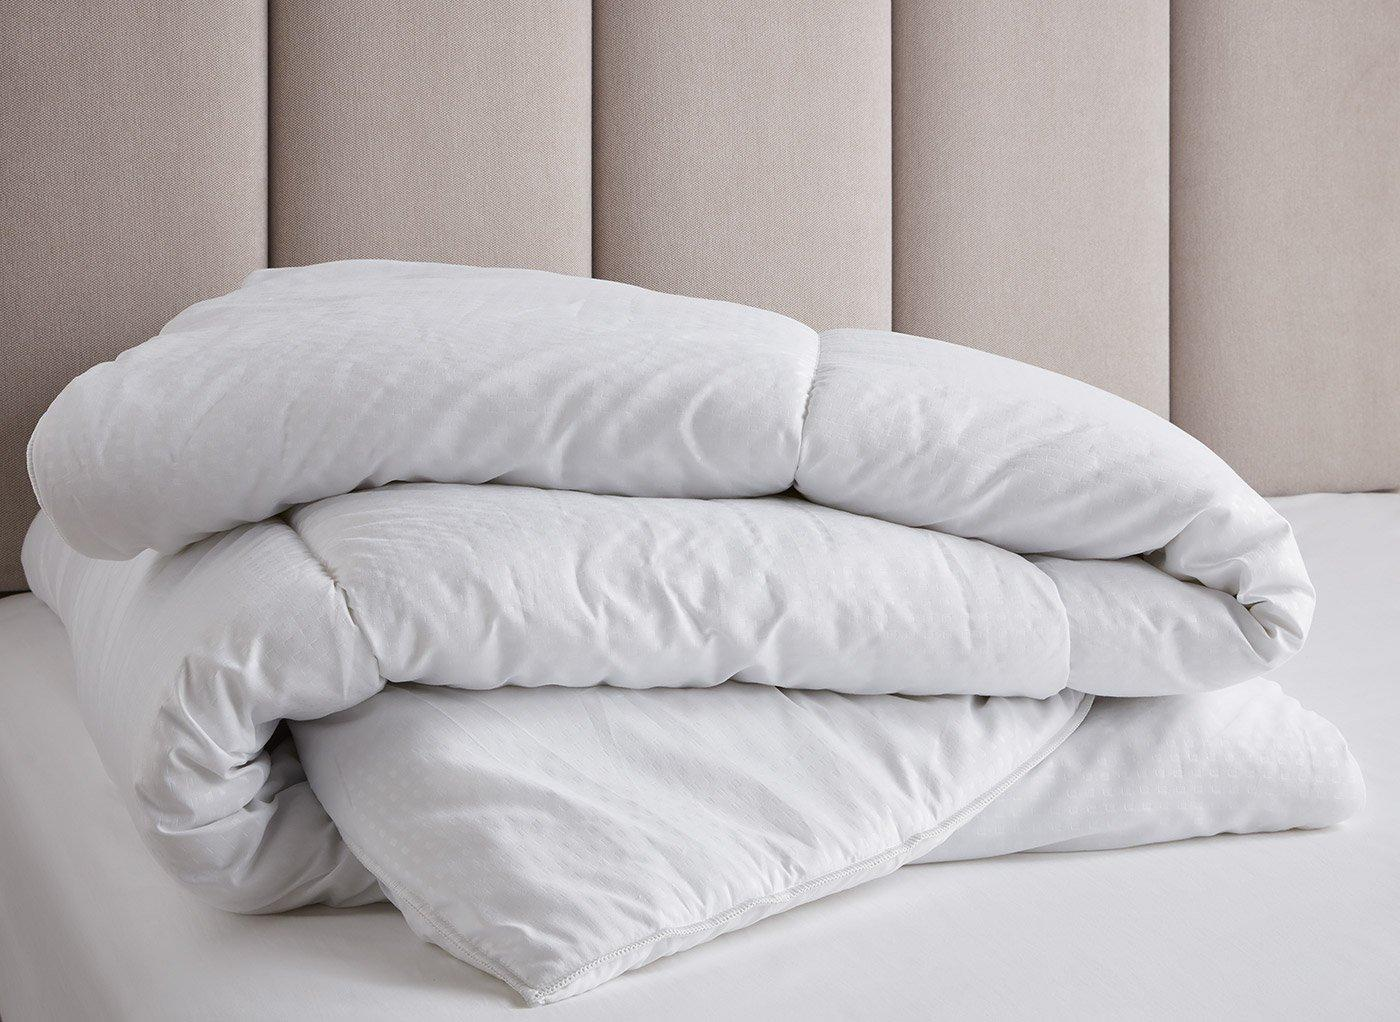 Doze Anti Allergy Duvet 5'0 King